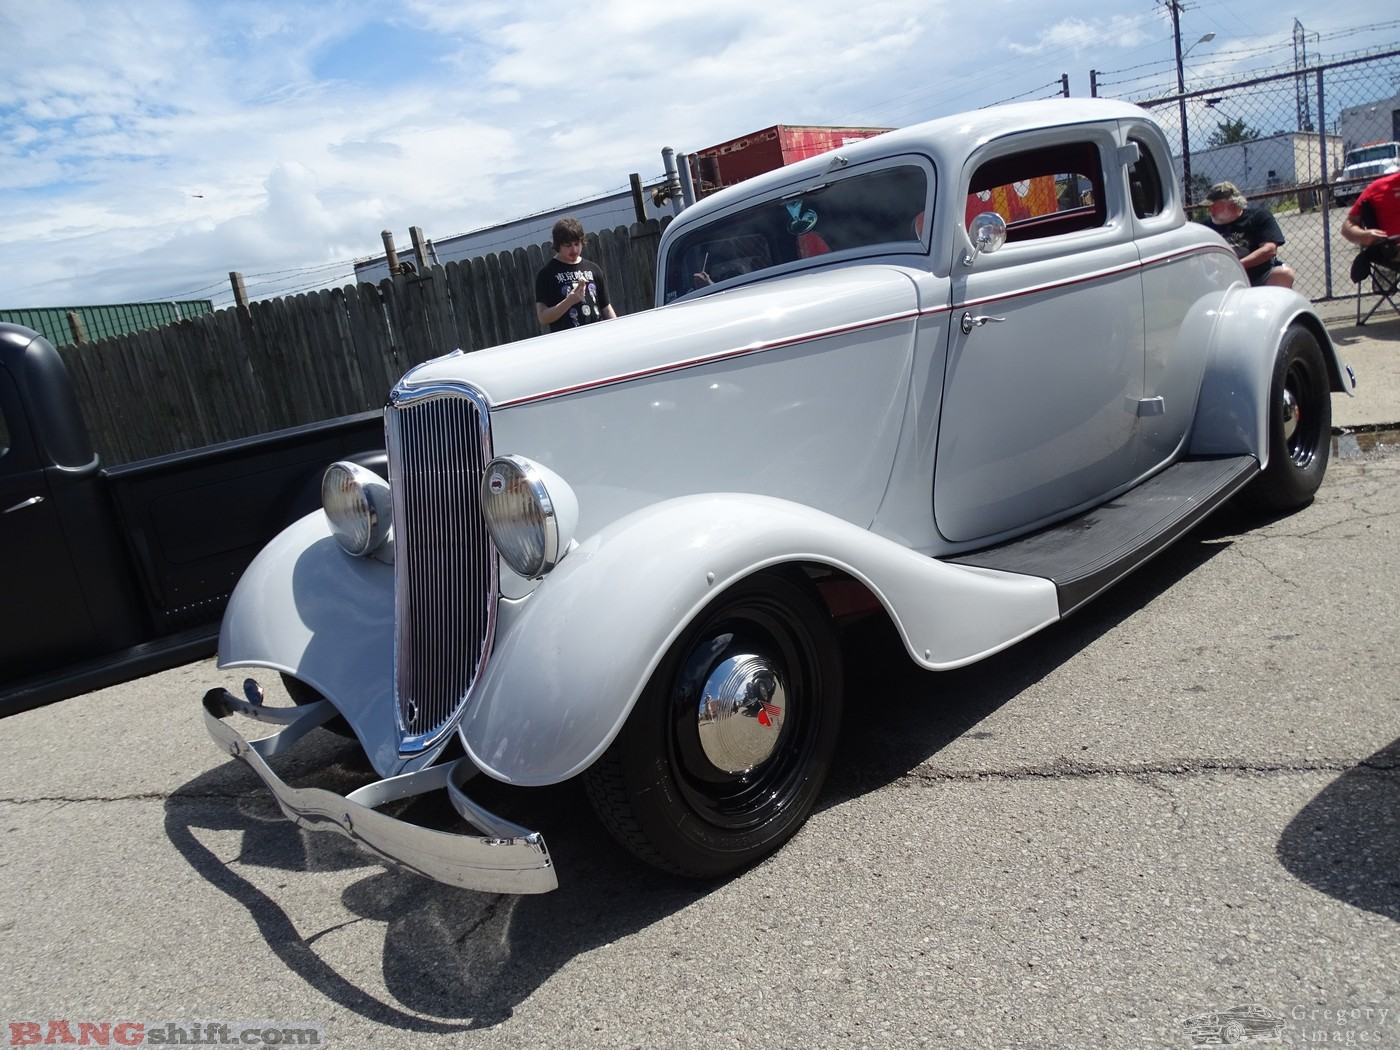 2018 Hot Rod Hullabaloo Photo Coverage: The Clouds Cleared And The Cars Were Radical!